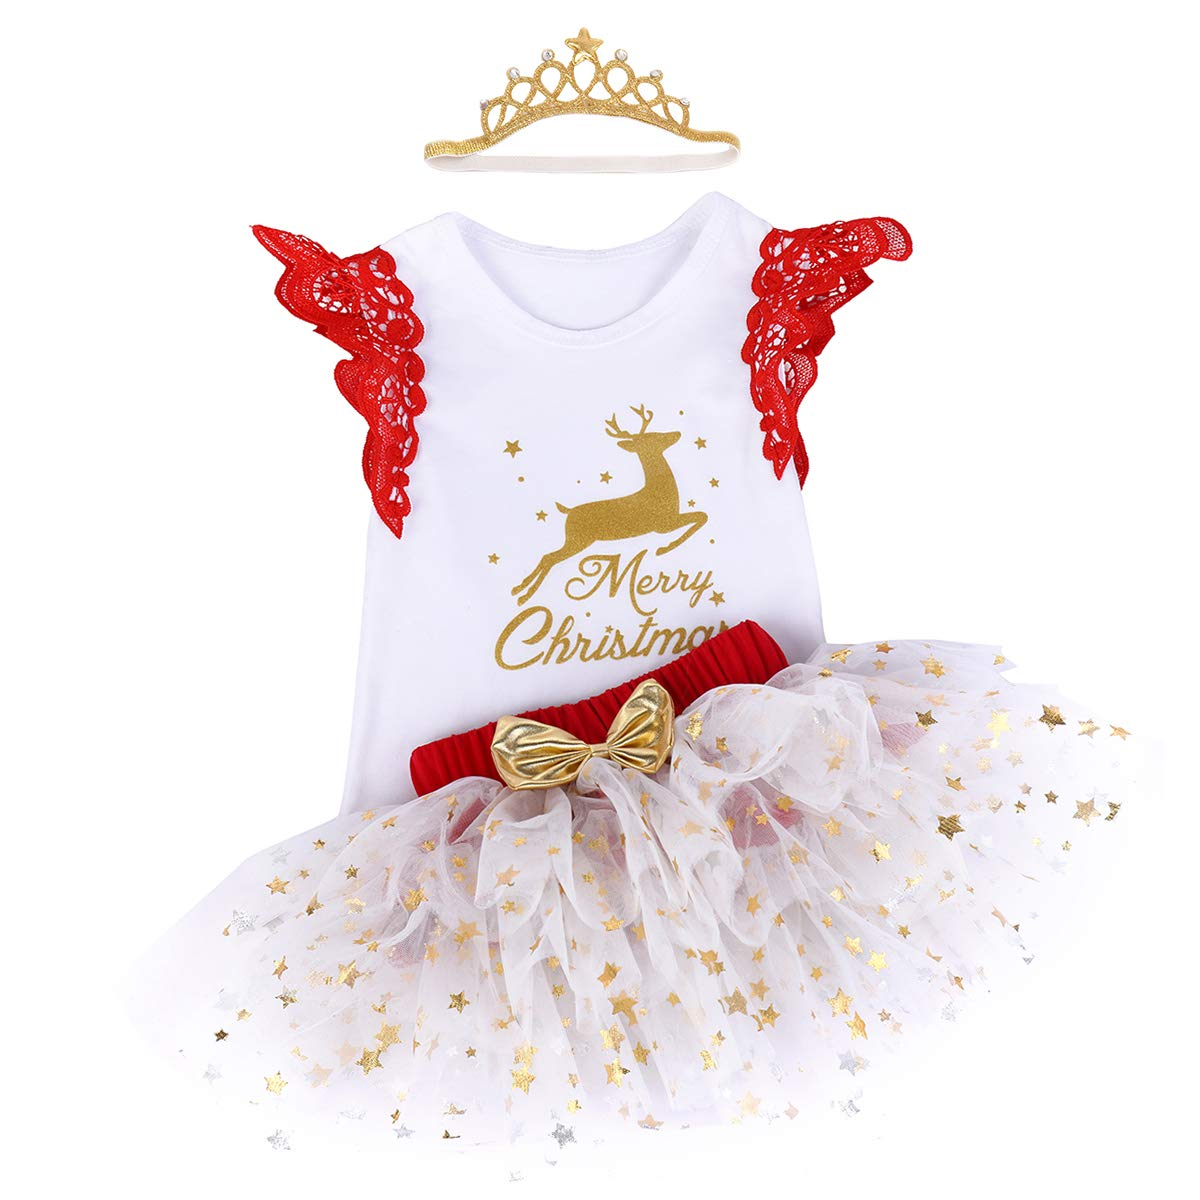 Baby Girls My First 1st Christmas Birthday Outfits Romper Stars Tutu Skirt with Headband Lace Sleeveless Bodysuit Ruffle Tulle Dress Newborn Infant Toddler Princess Xmas Fancy Dress Up Party Costume